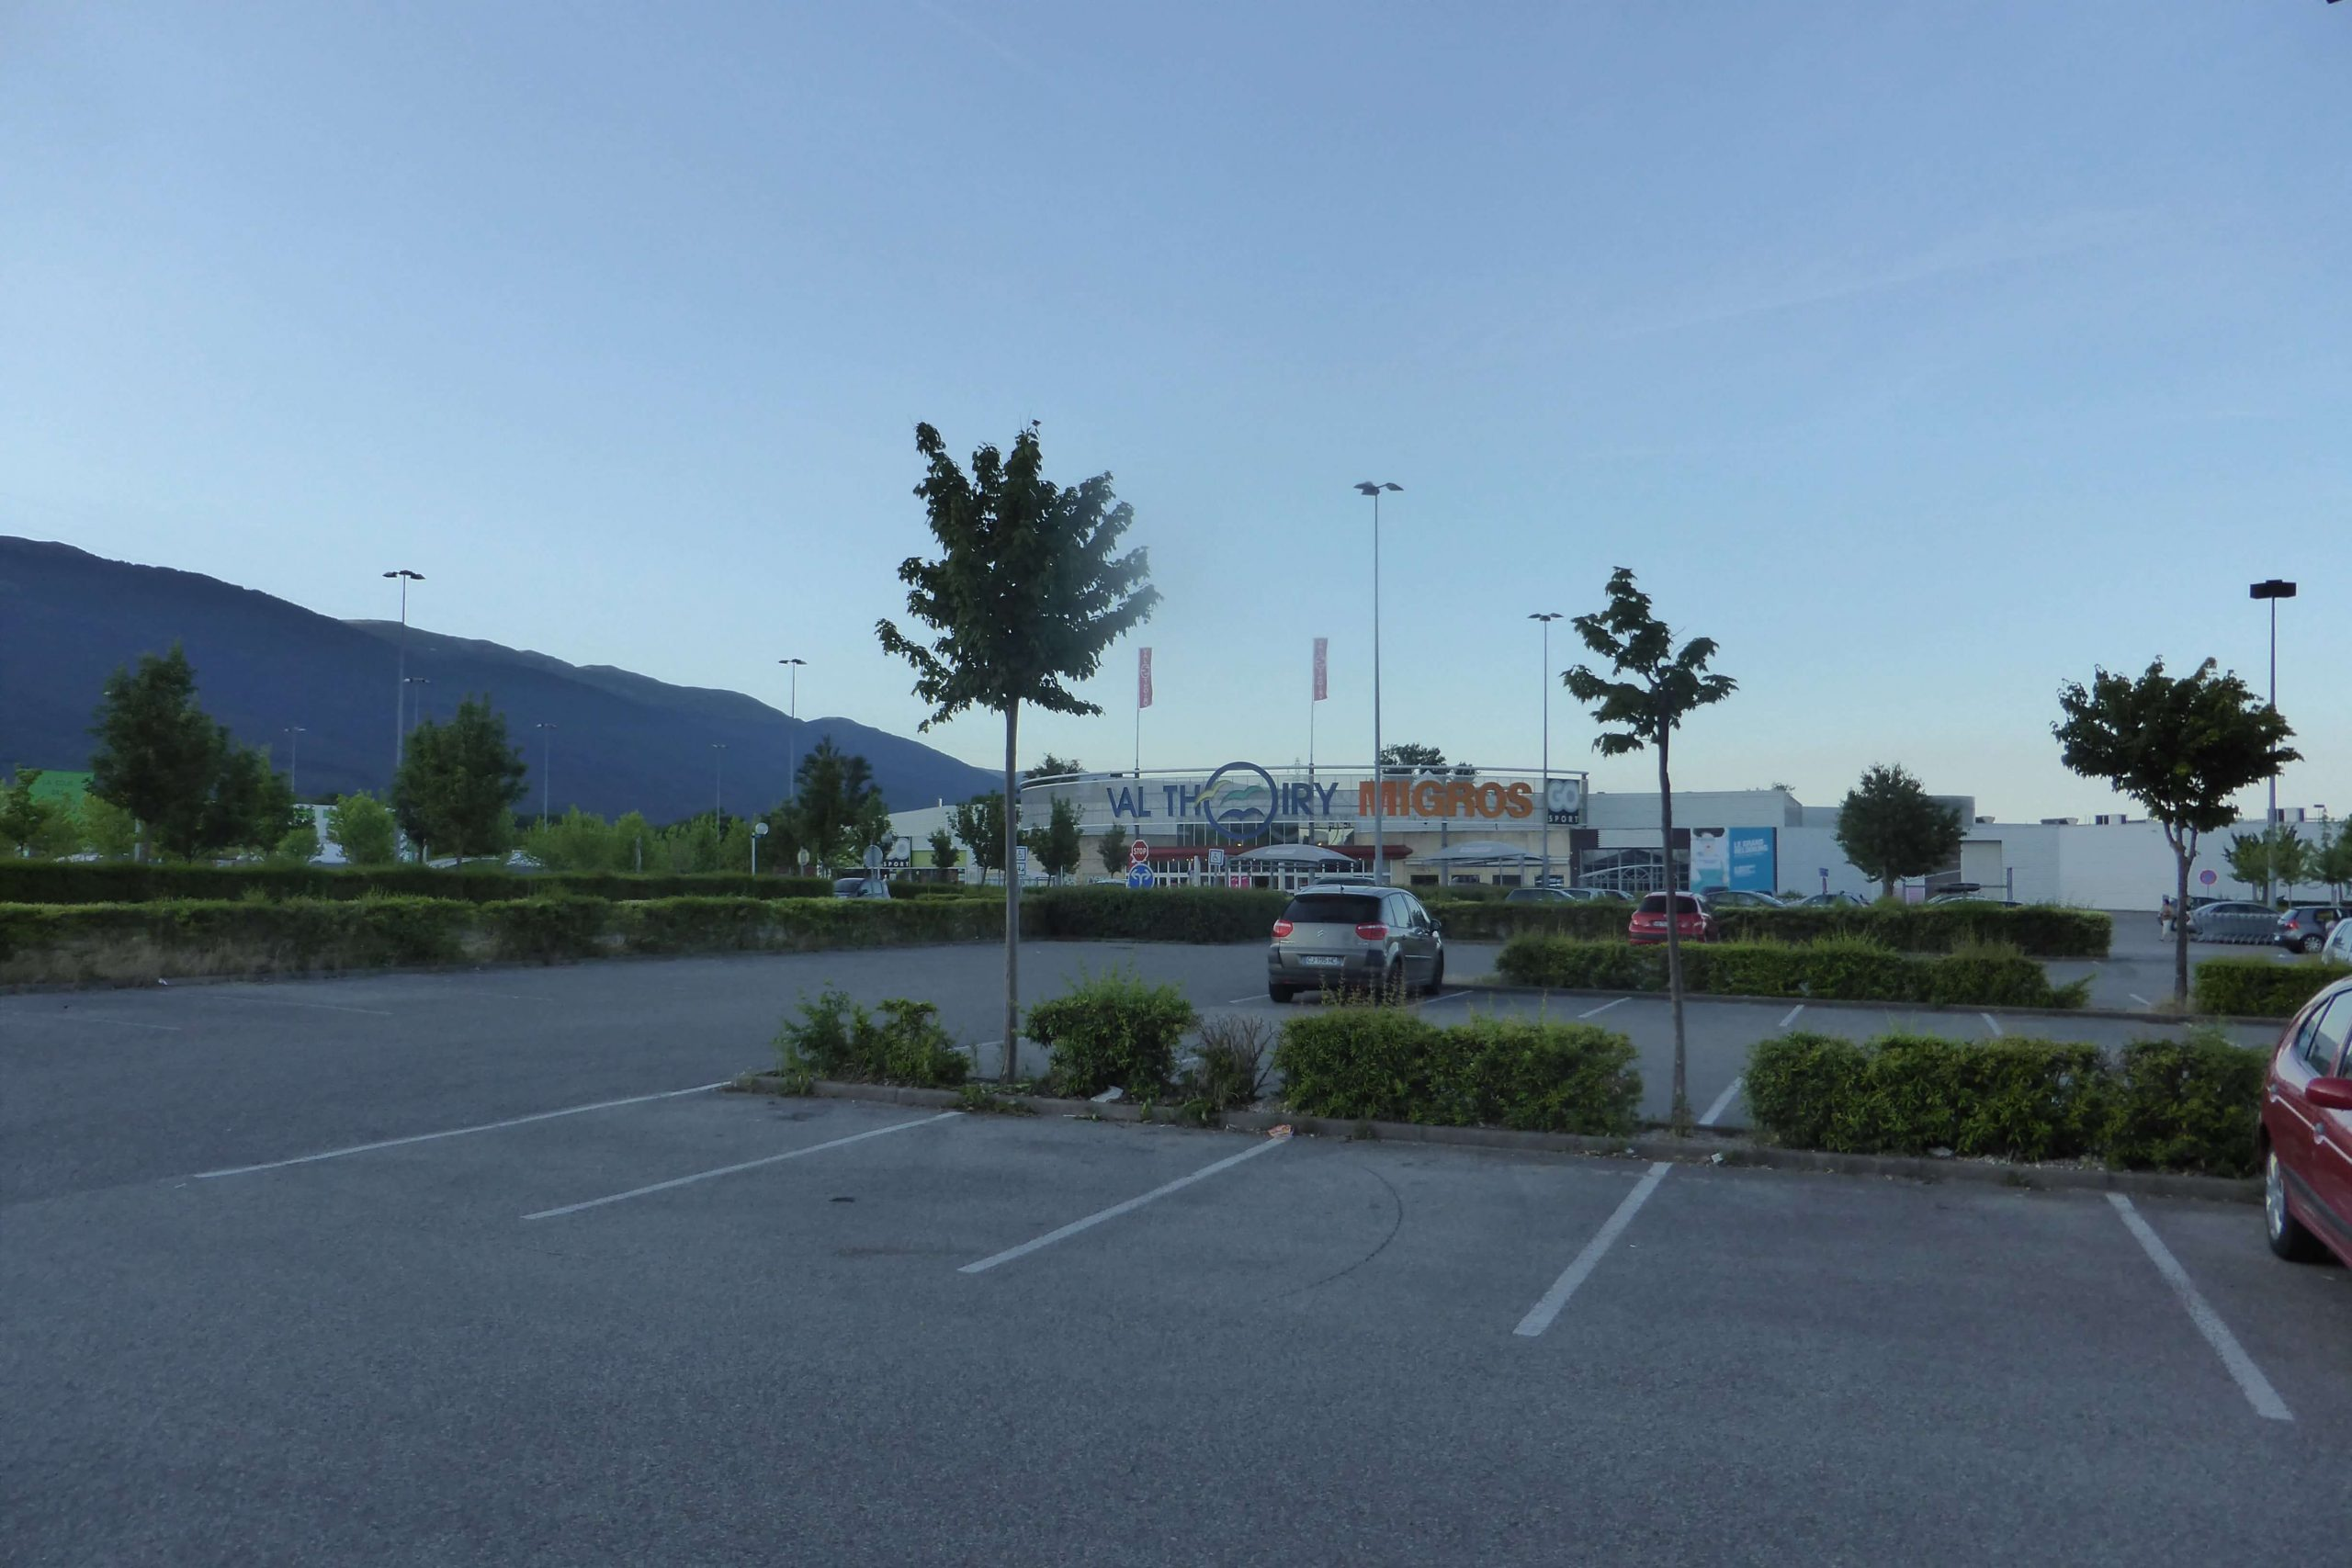 Val Thoiry Shopping Centre 1